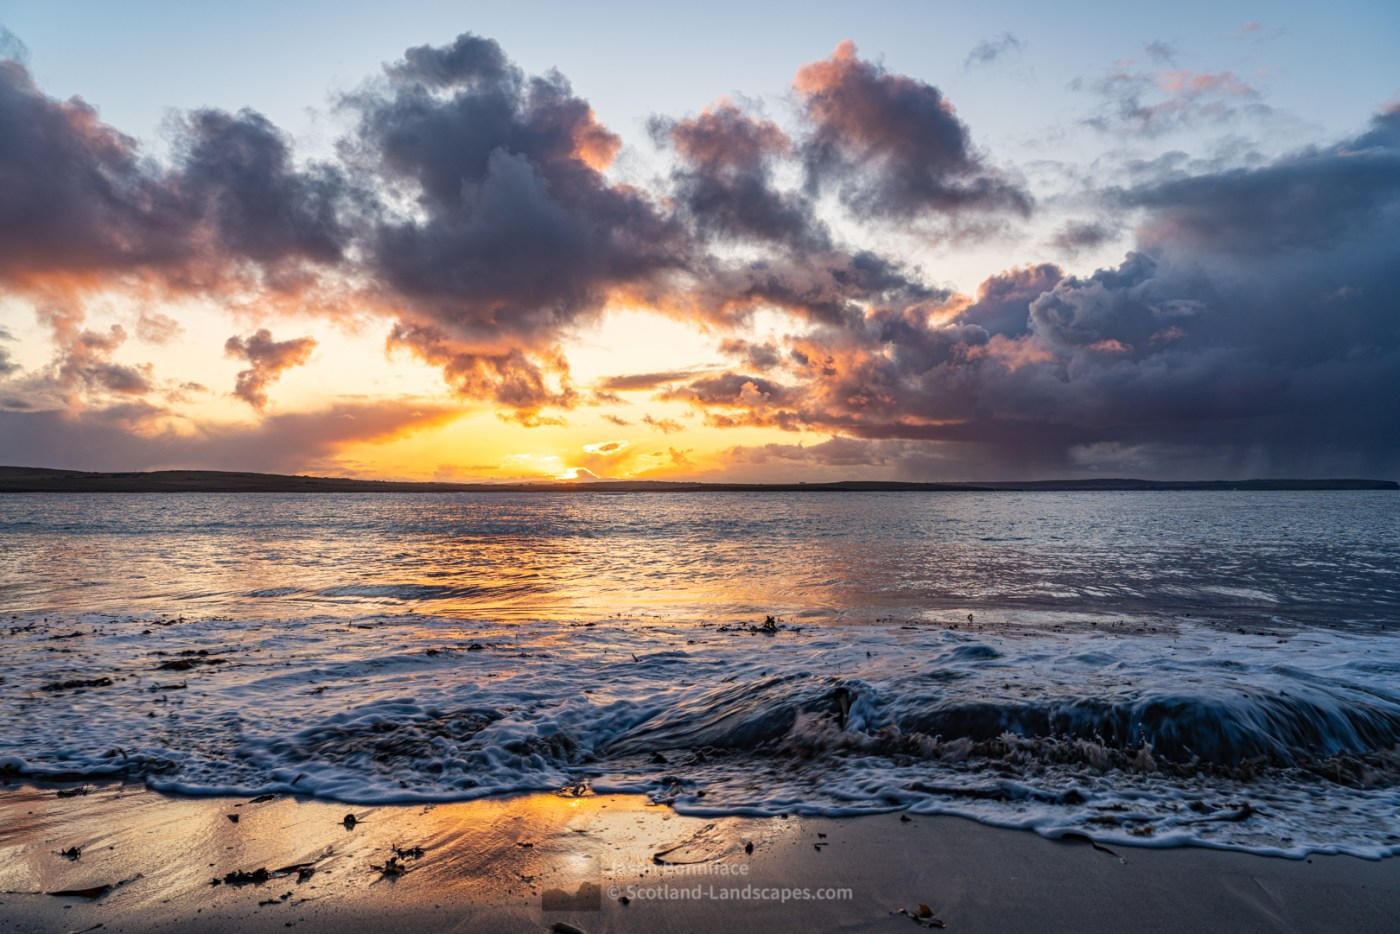 Sunset from Peedie Beach; a lovely small beach on the west side of Dunnet Head. It's a short but steep walk from the car park at Dwarwick Pier at the west end of the village of Dunnet